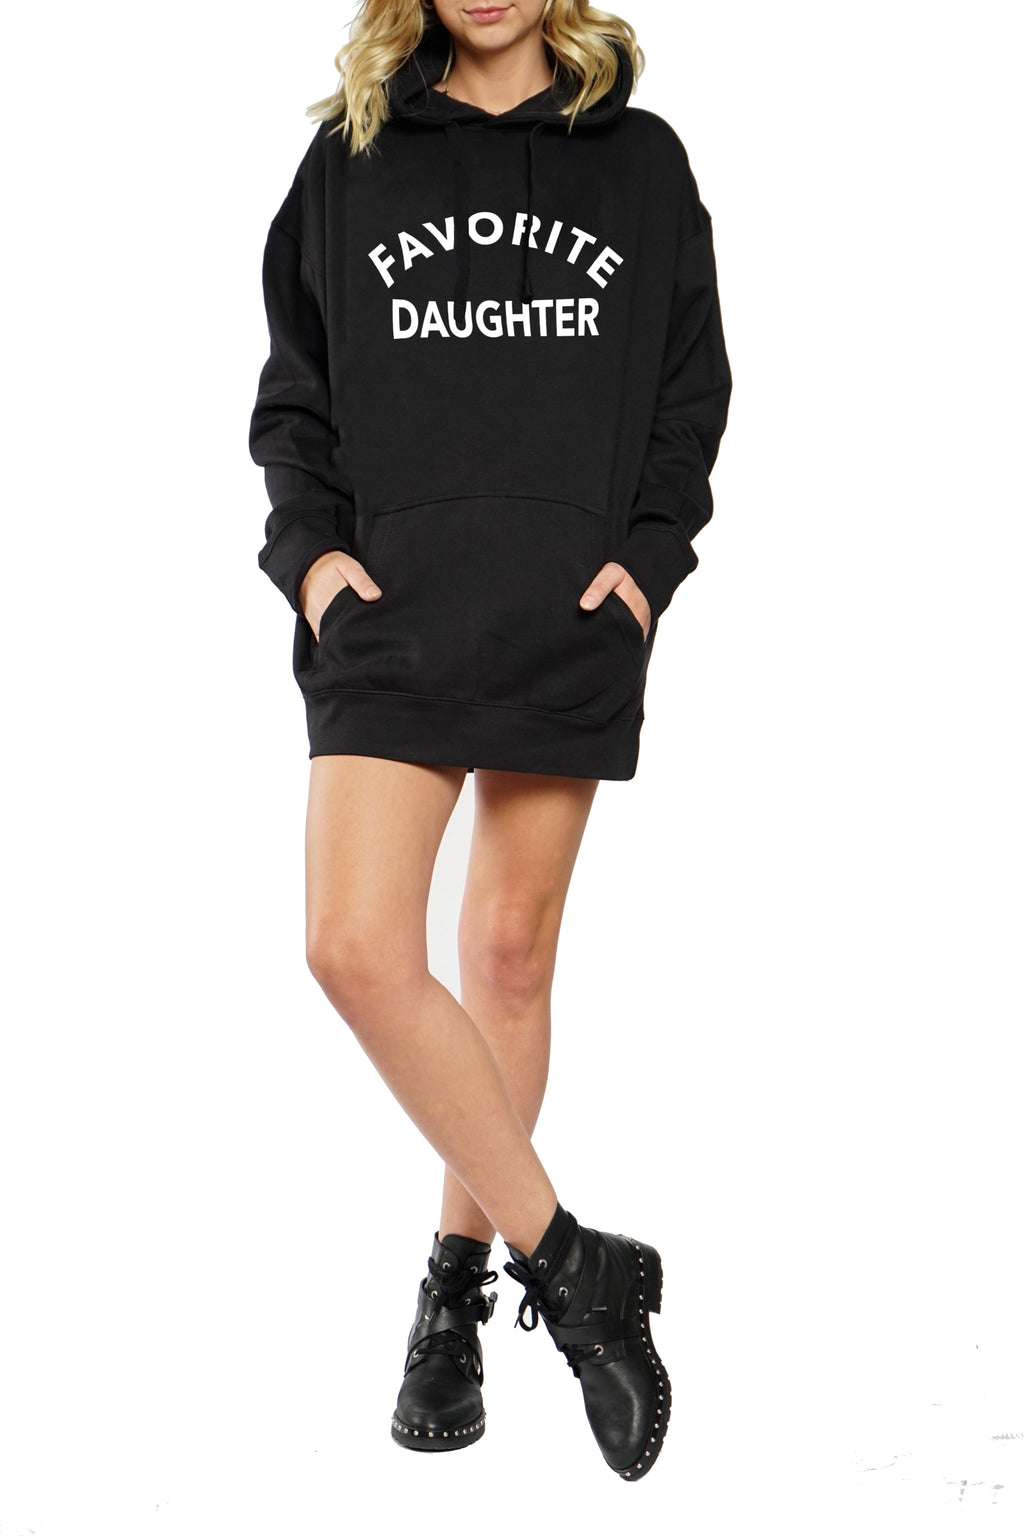 OVERSIZED HOODIE - Favorite Daughter